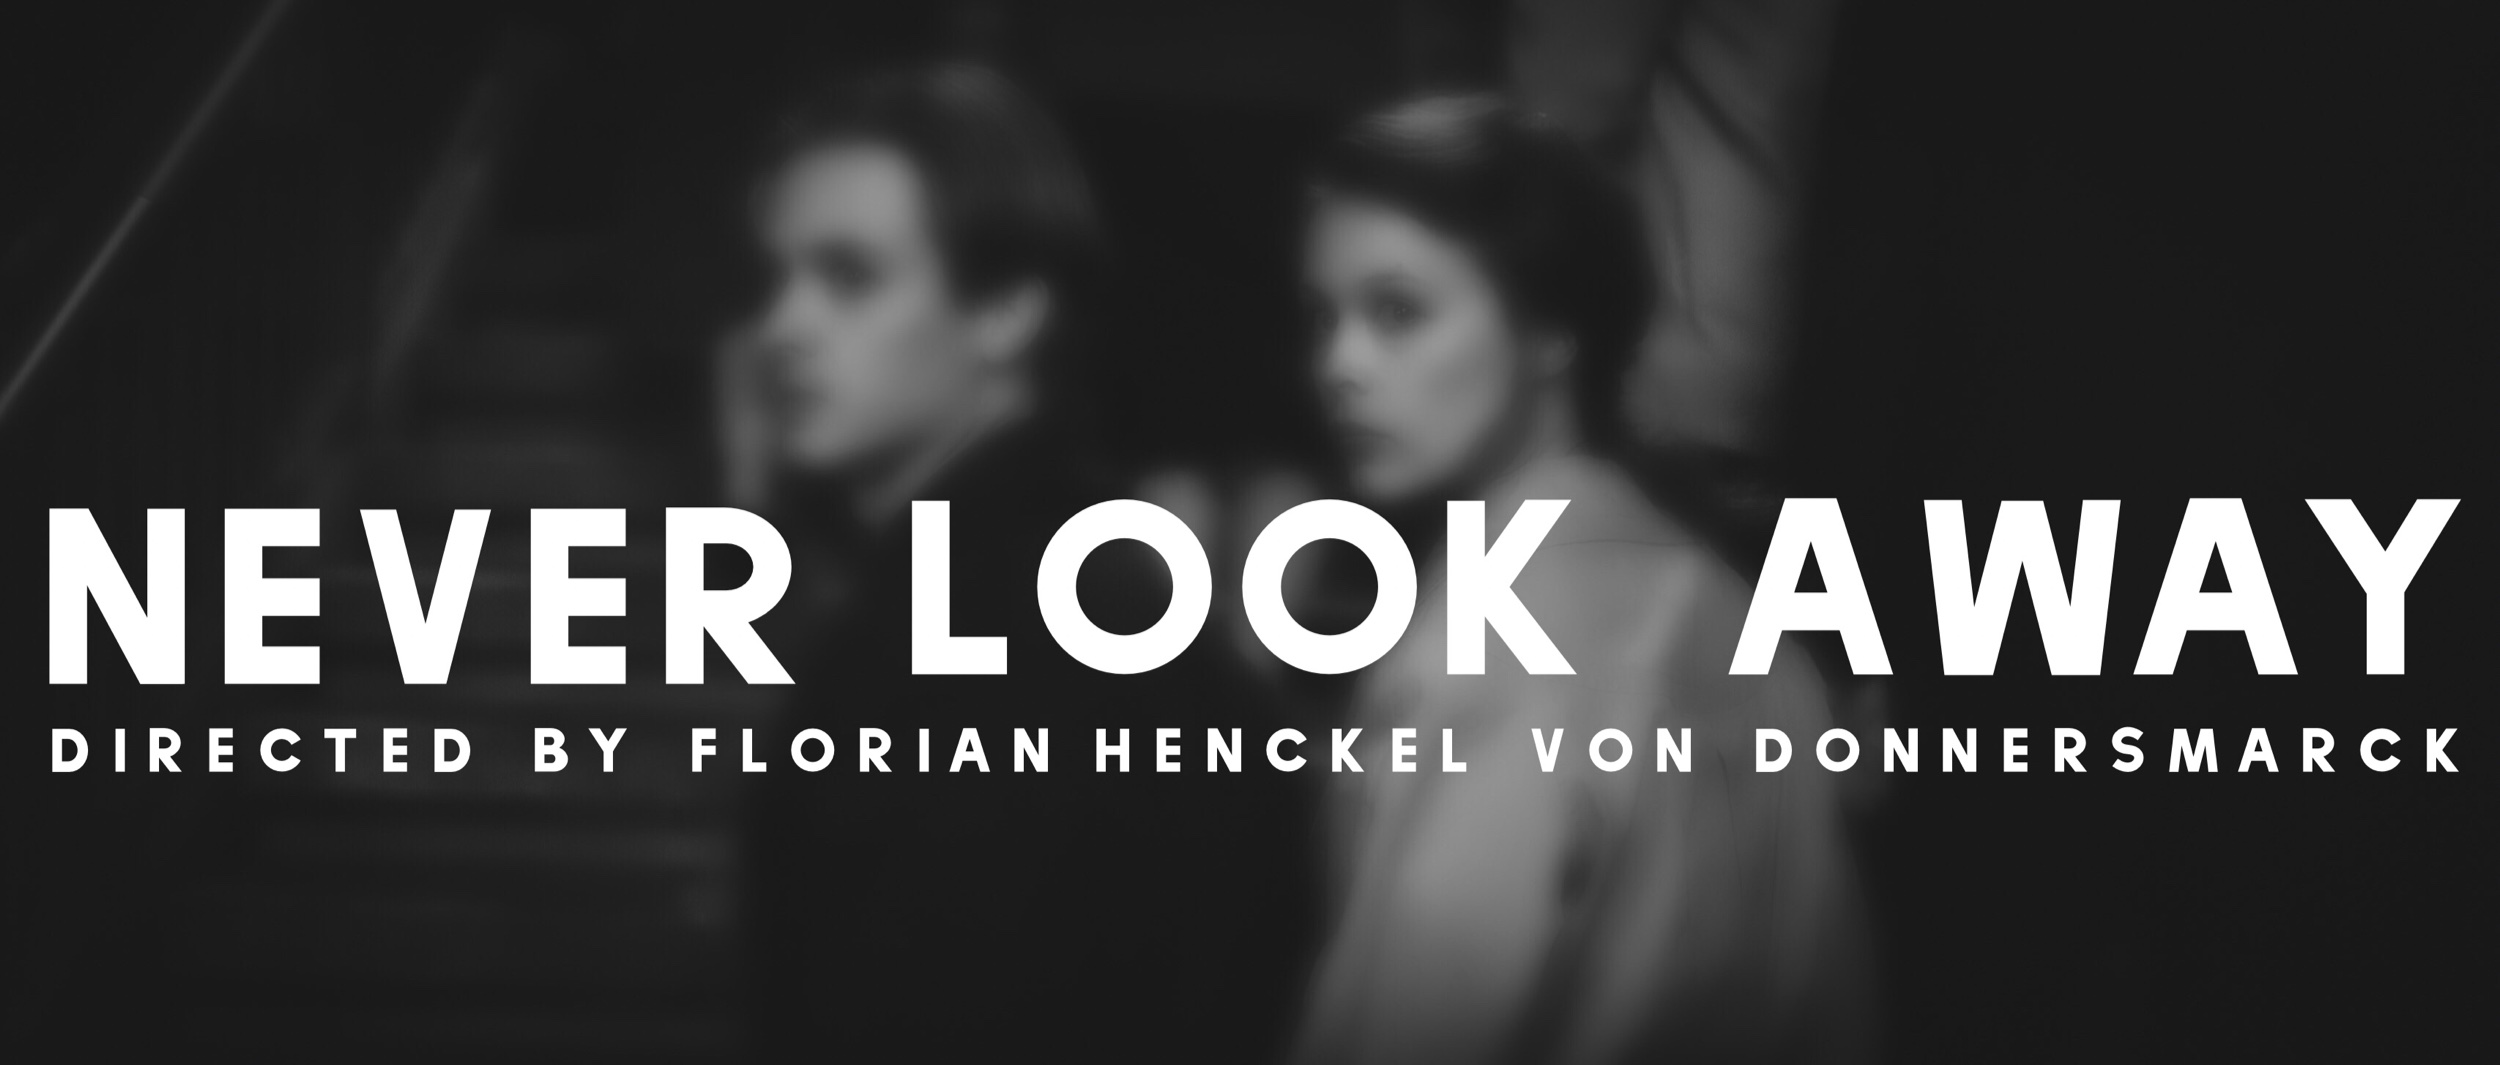 Never look away directed Florian Henckel von Donnersmarck based on Gerhard Richter